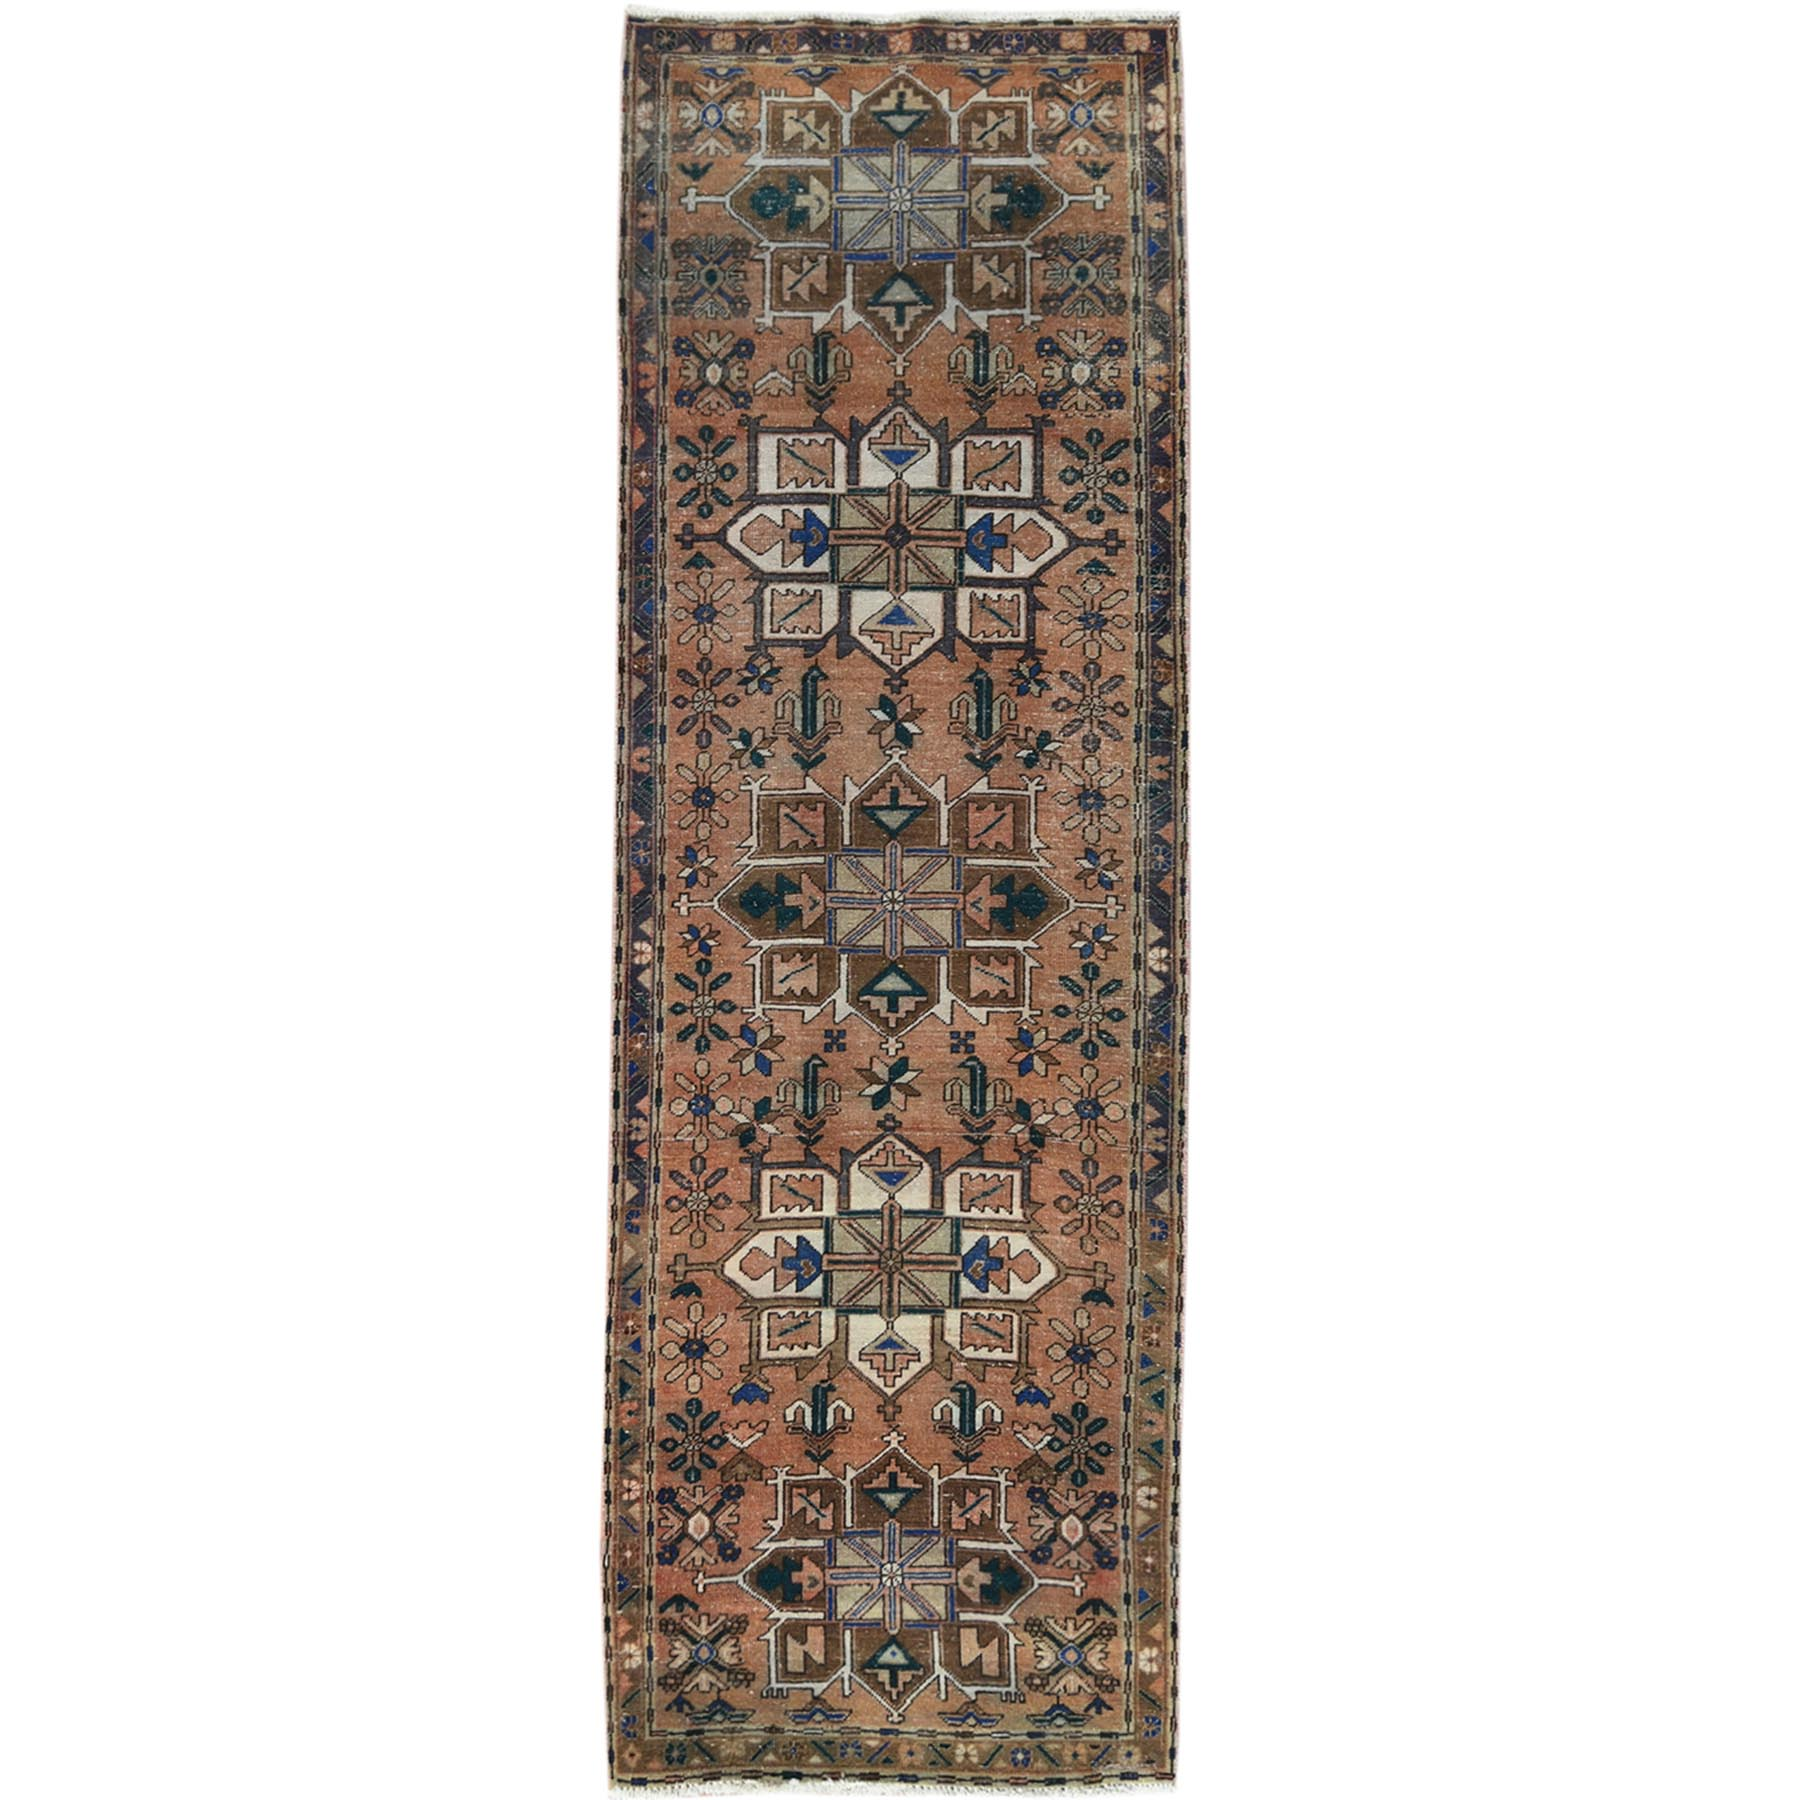 "3'4""x10' Vintage And Worn Down Brown Persian Heriz Clean Hand Knotted Organic Wool Oriental Runner Rug"